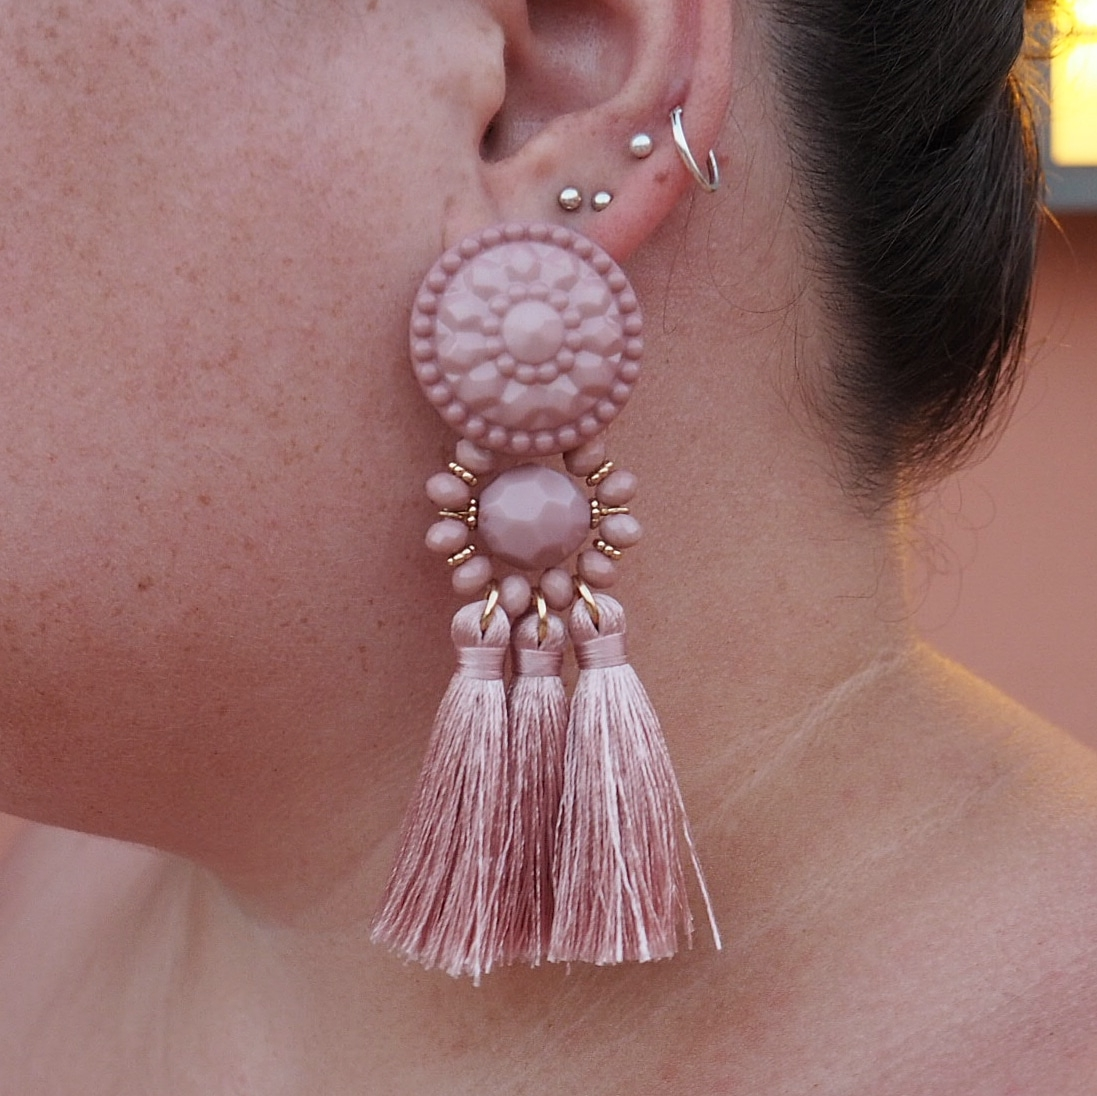 H&M tassel earrings